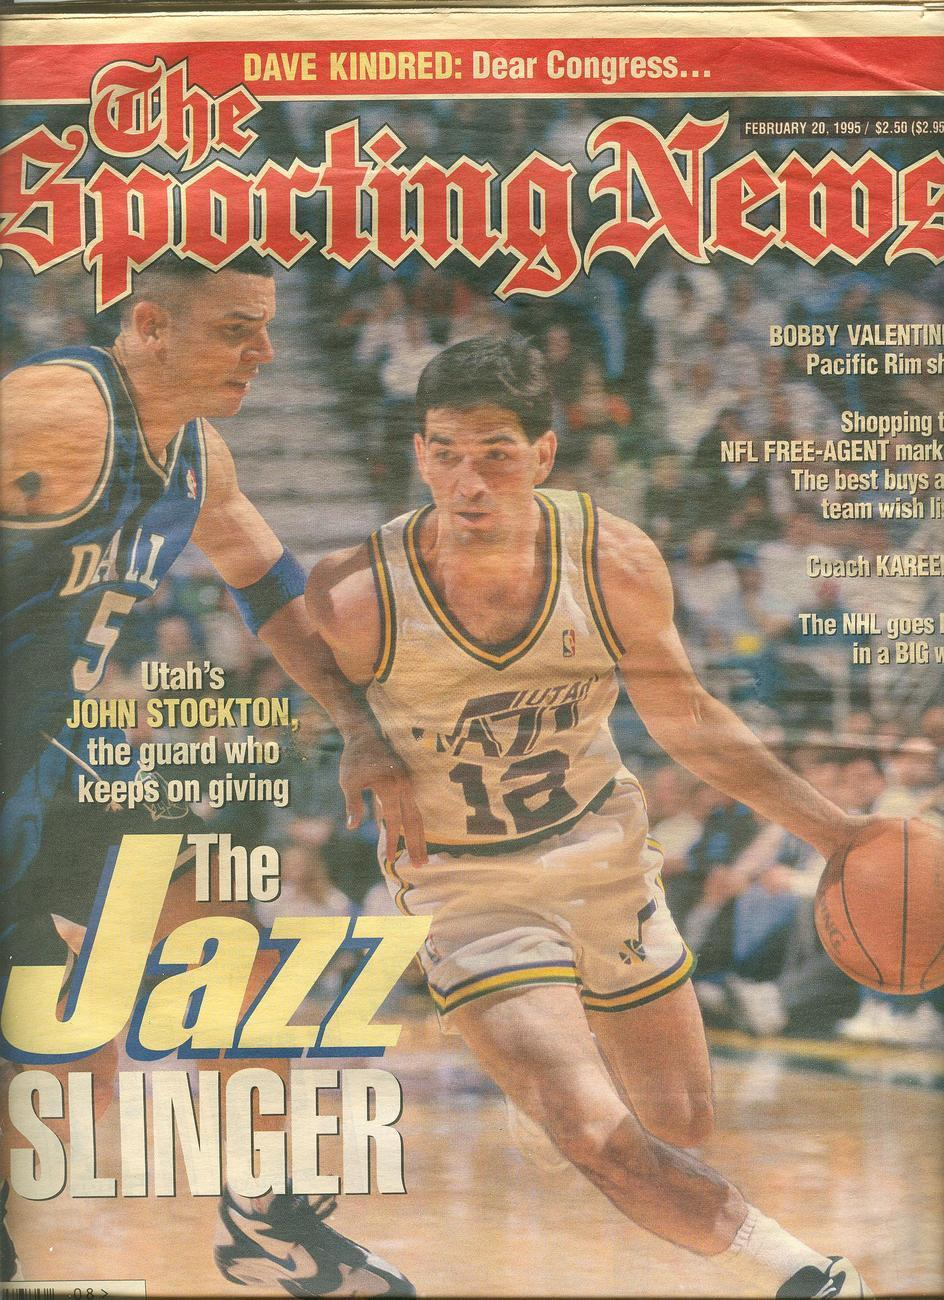 The sporting news feb.20 1995 001